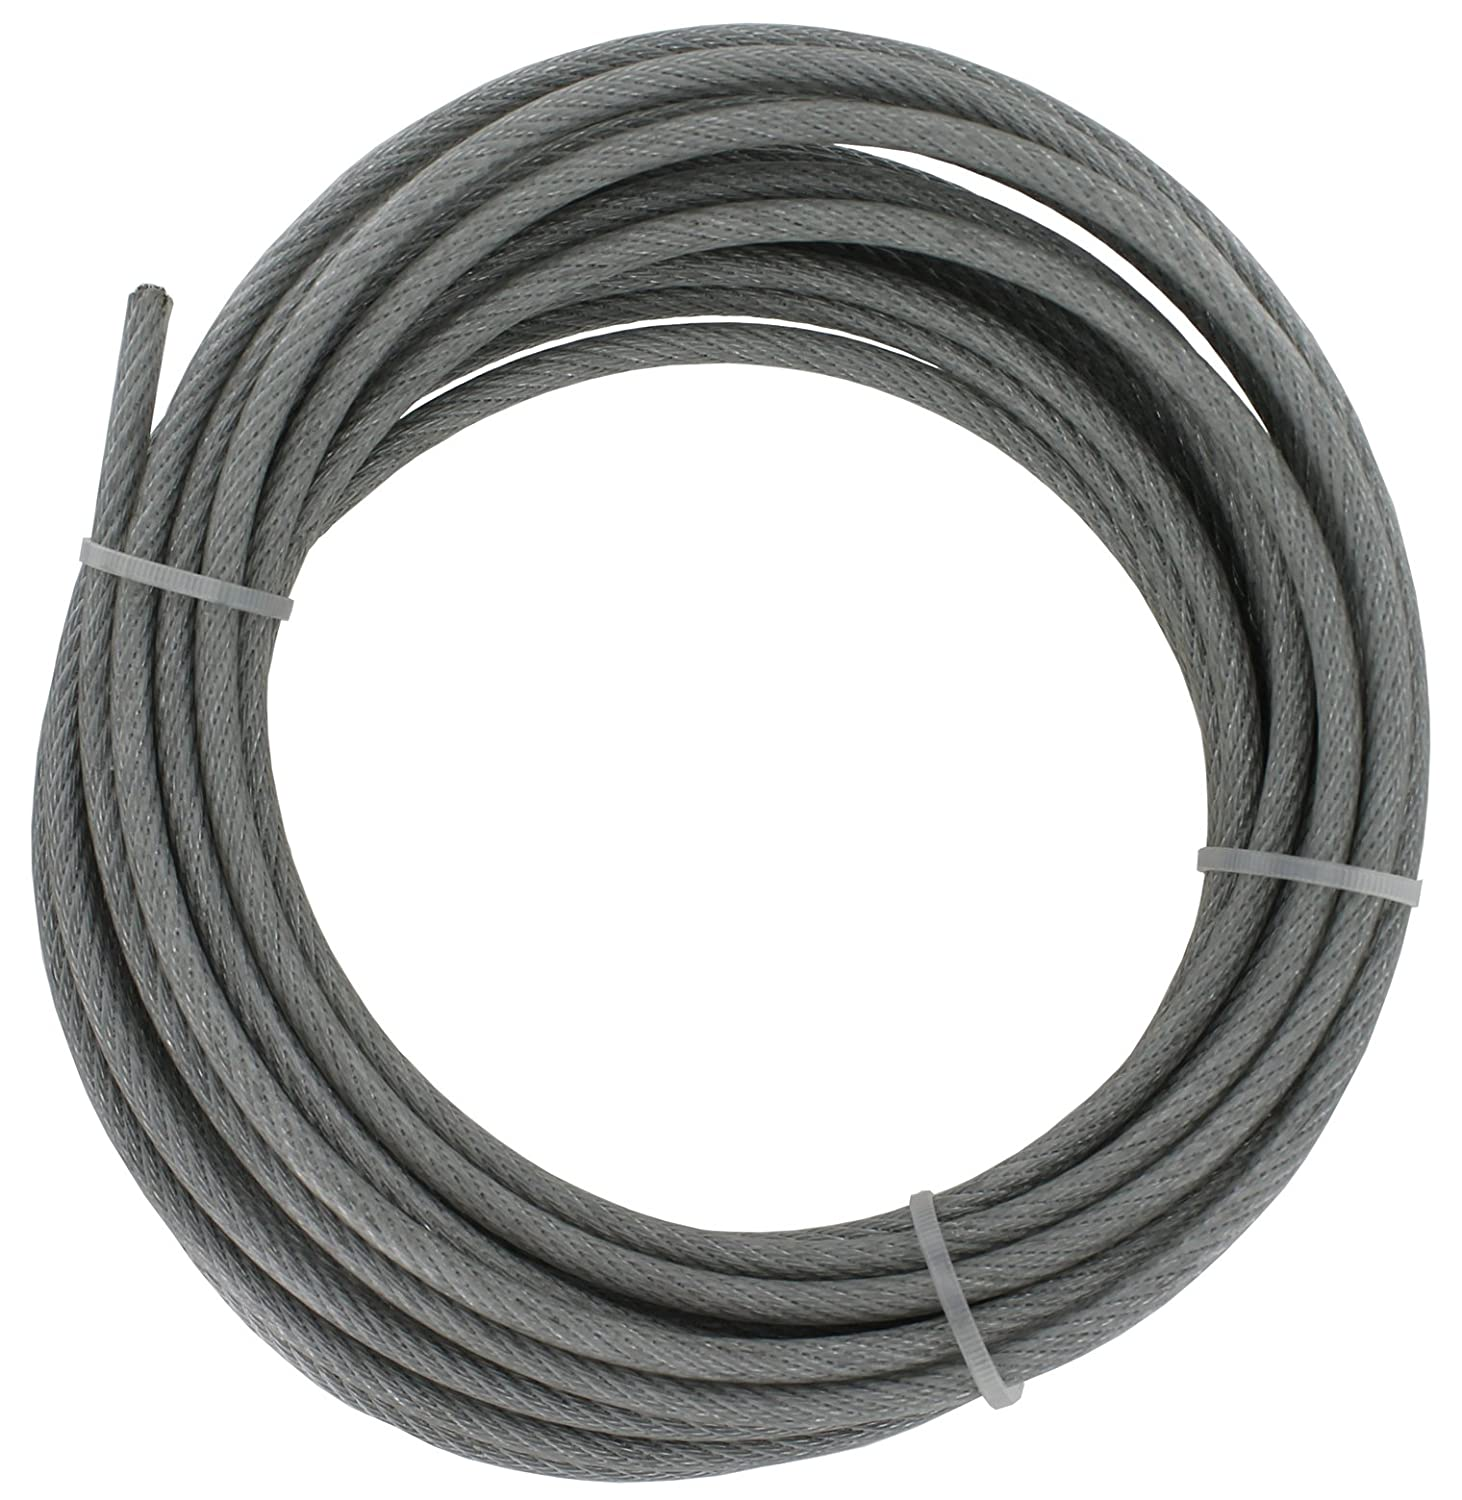 Baron Mfg Company 50225 3-16 in. 7 X 7 X 30 in. Galvanized Cable B00FNCQHZC